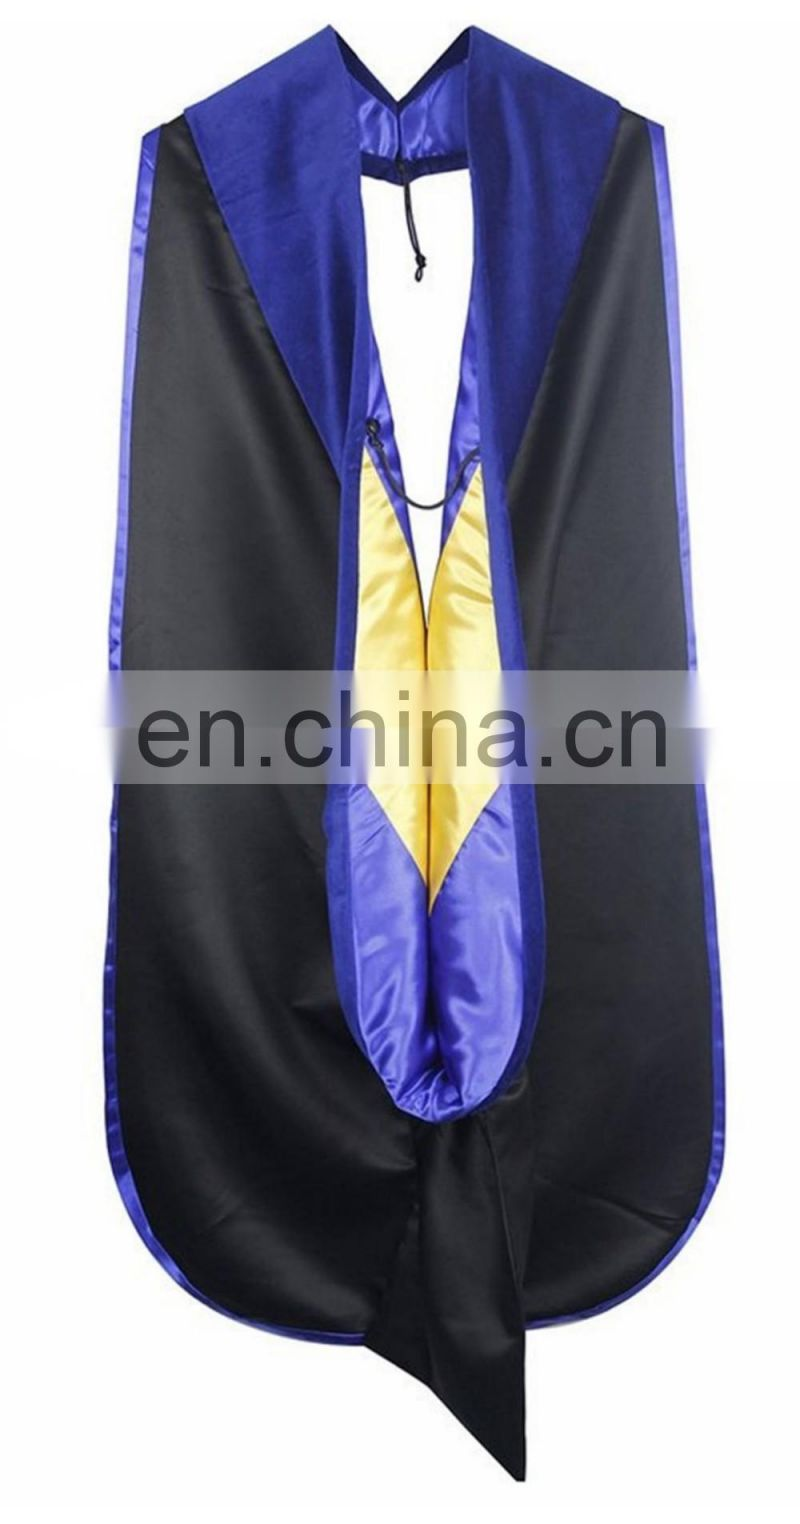 2016 Hot sale High quality Doctoral Graduation Hood with Royal Blue velvet